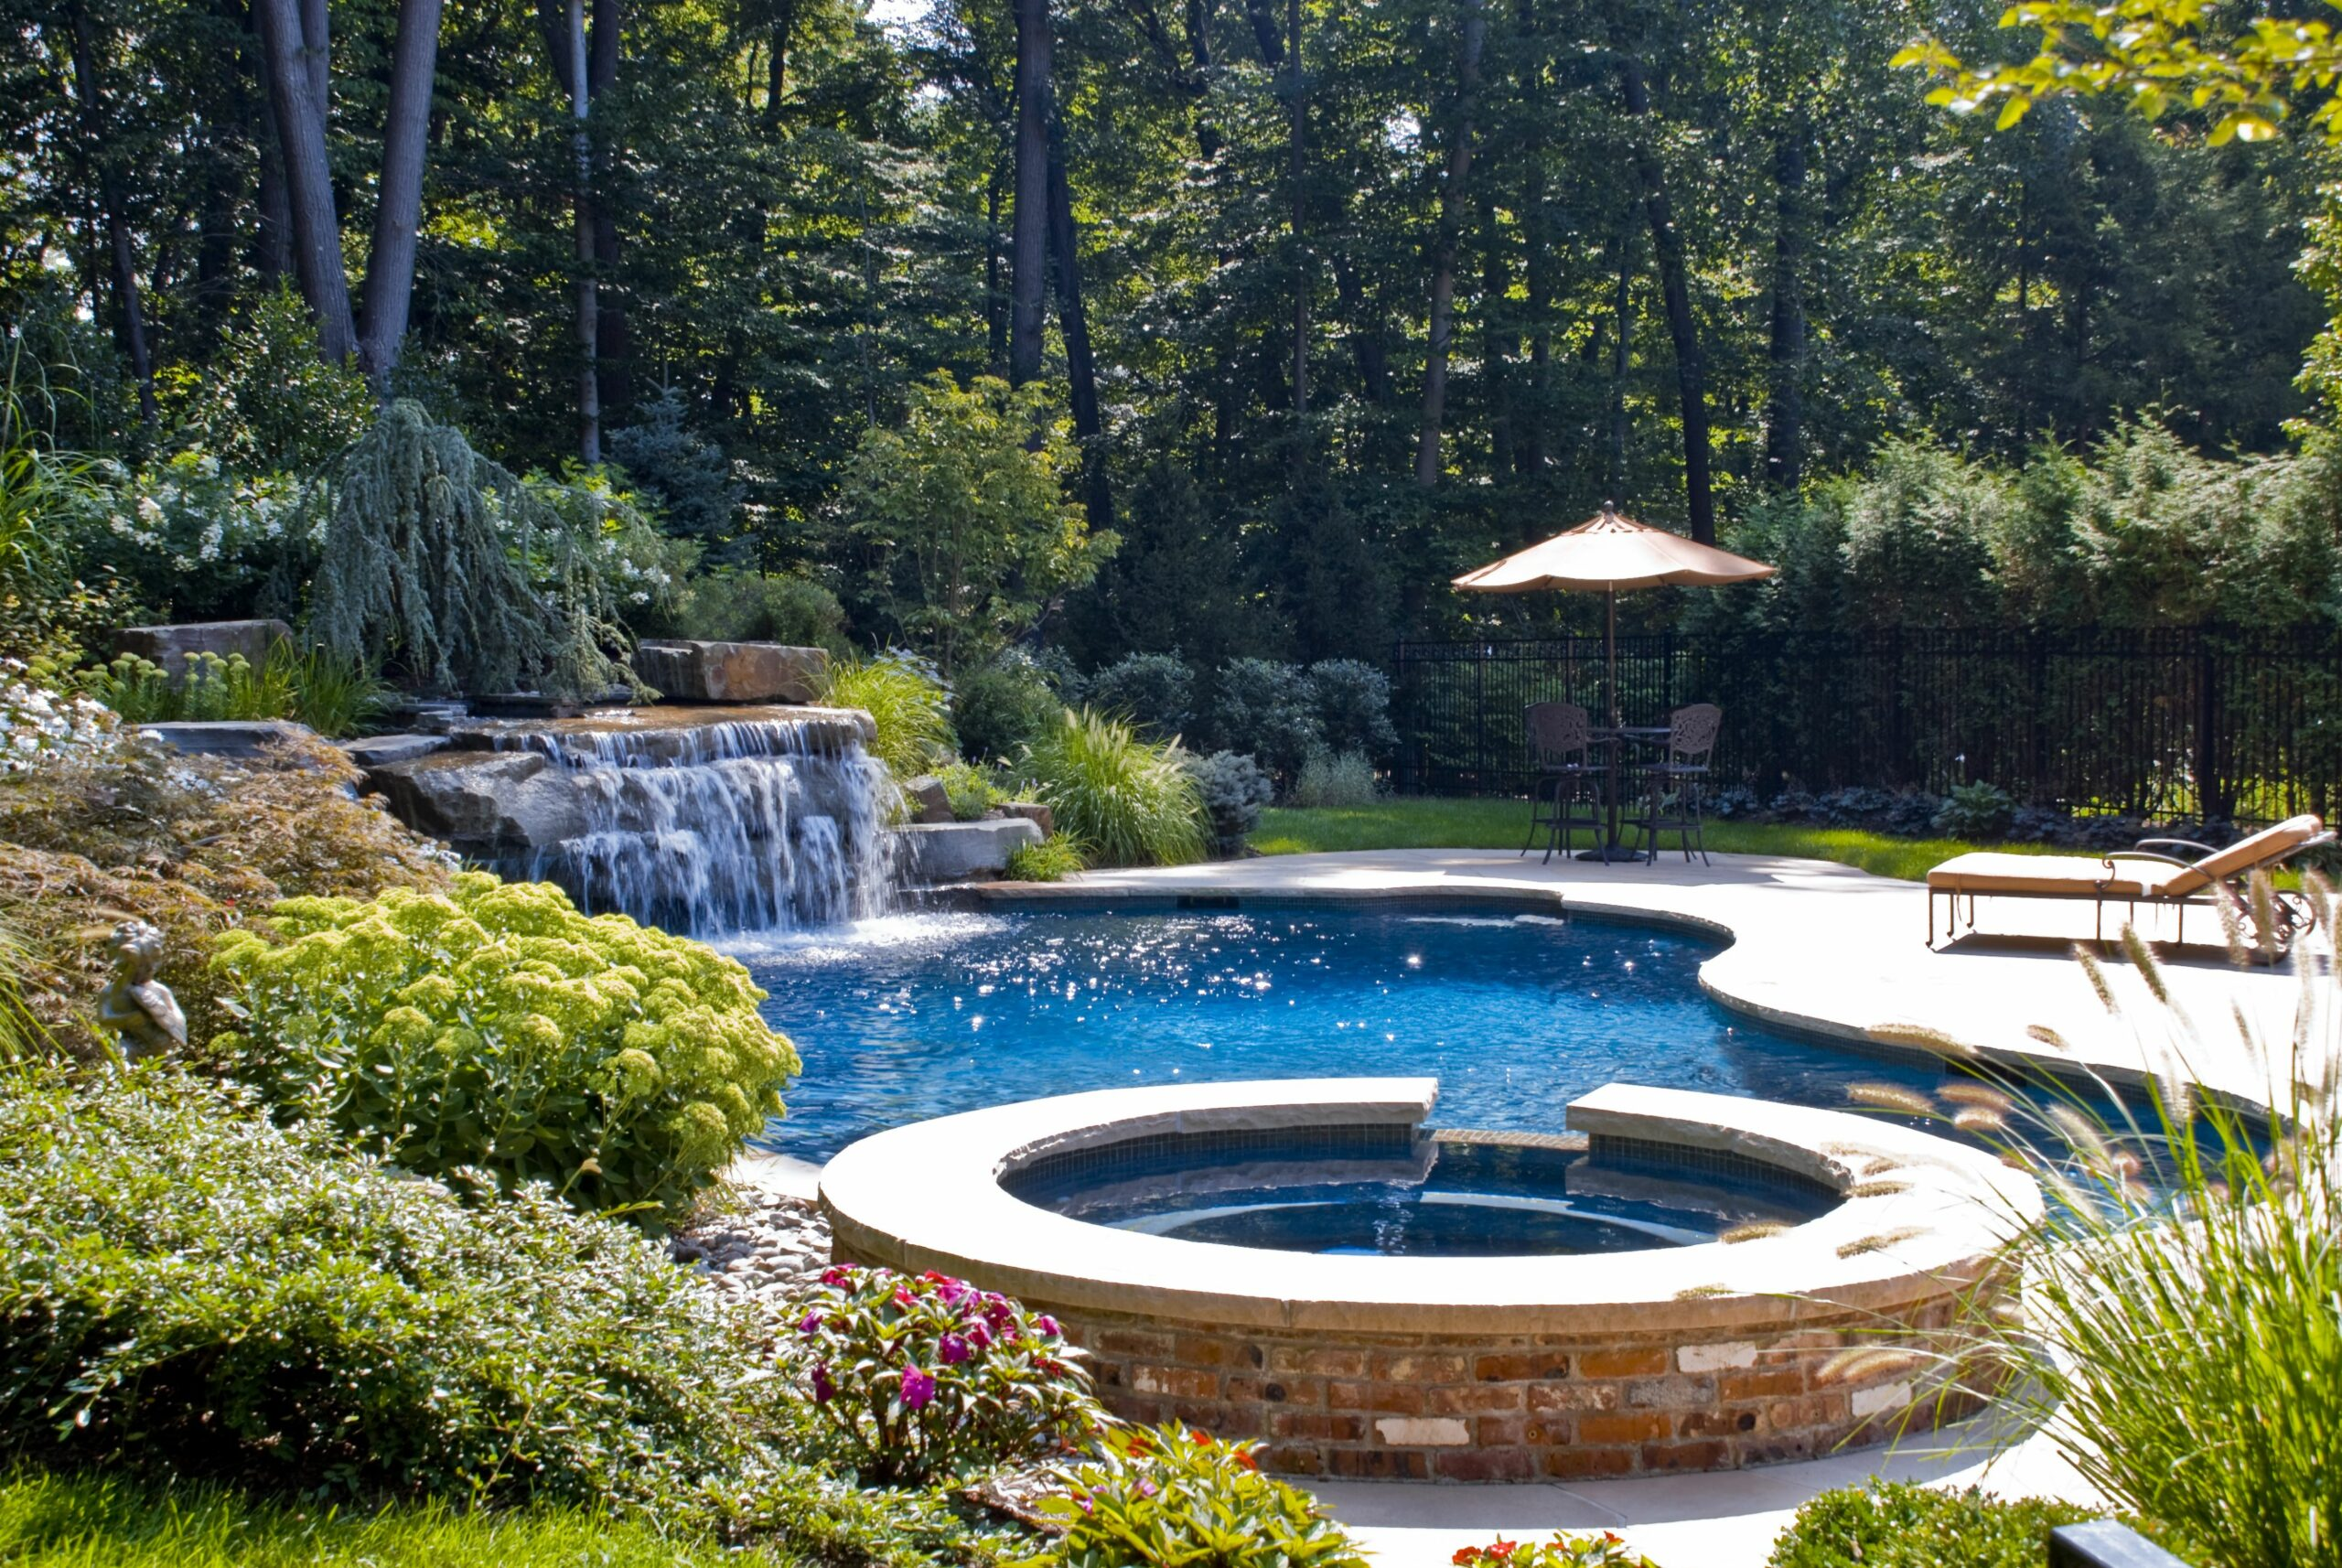 Complete Landscape Design & Outdoor Living By New Jersey Company